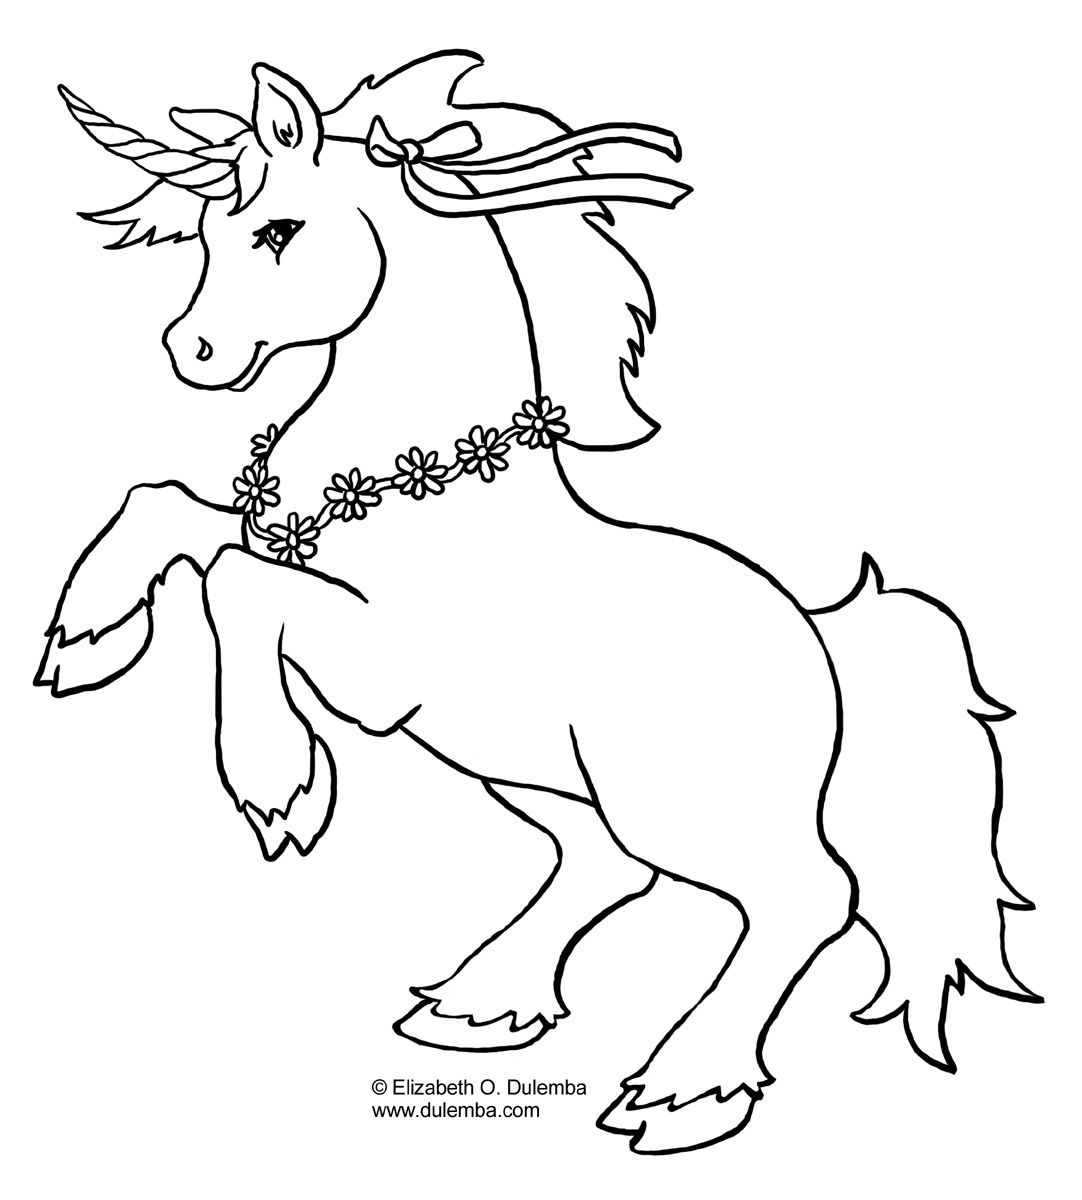 Coloring Pages Unicorn Coloring Pages Printable 1000 images about unicorns on pinterest coloring unicorn head and colouring pages